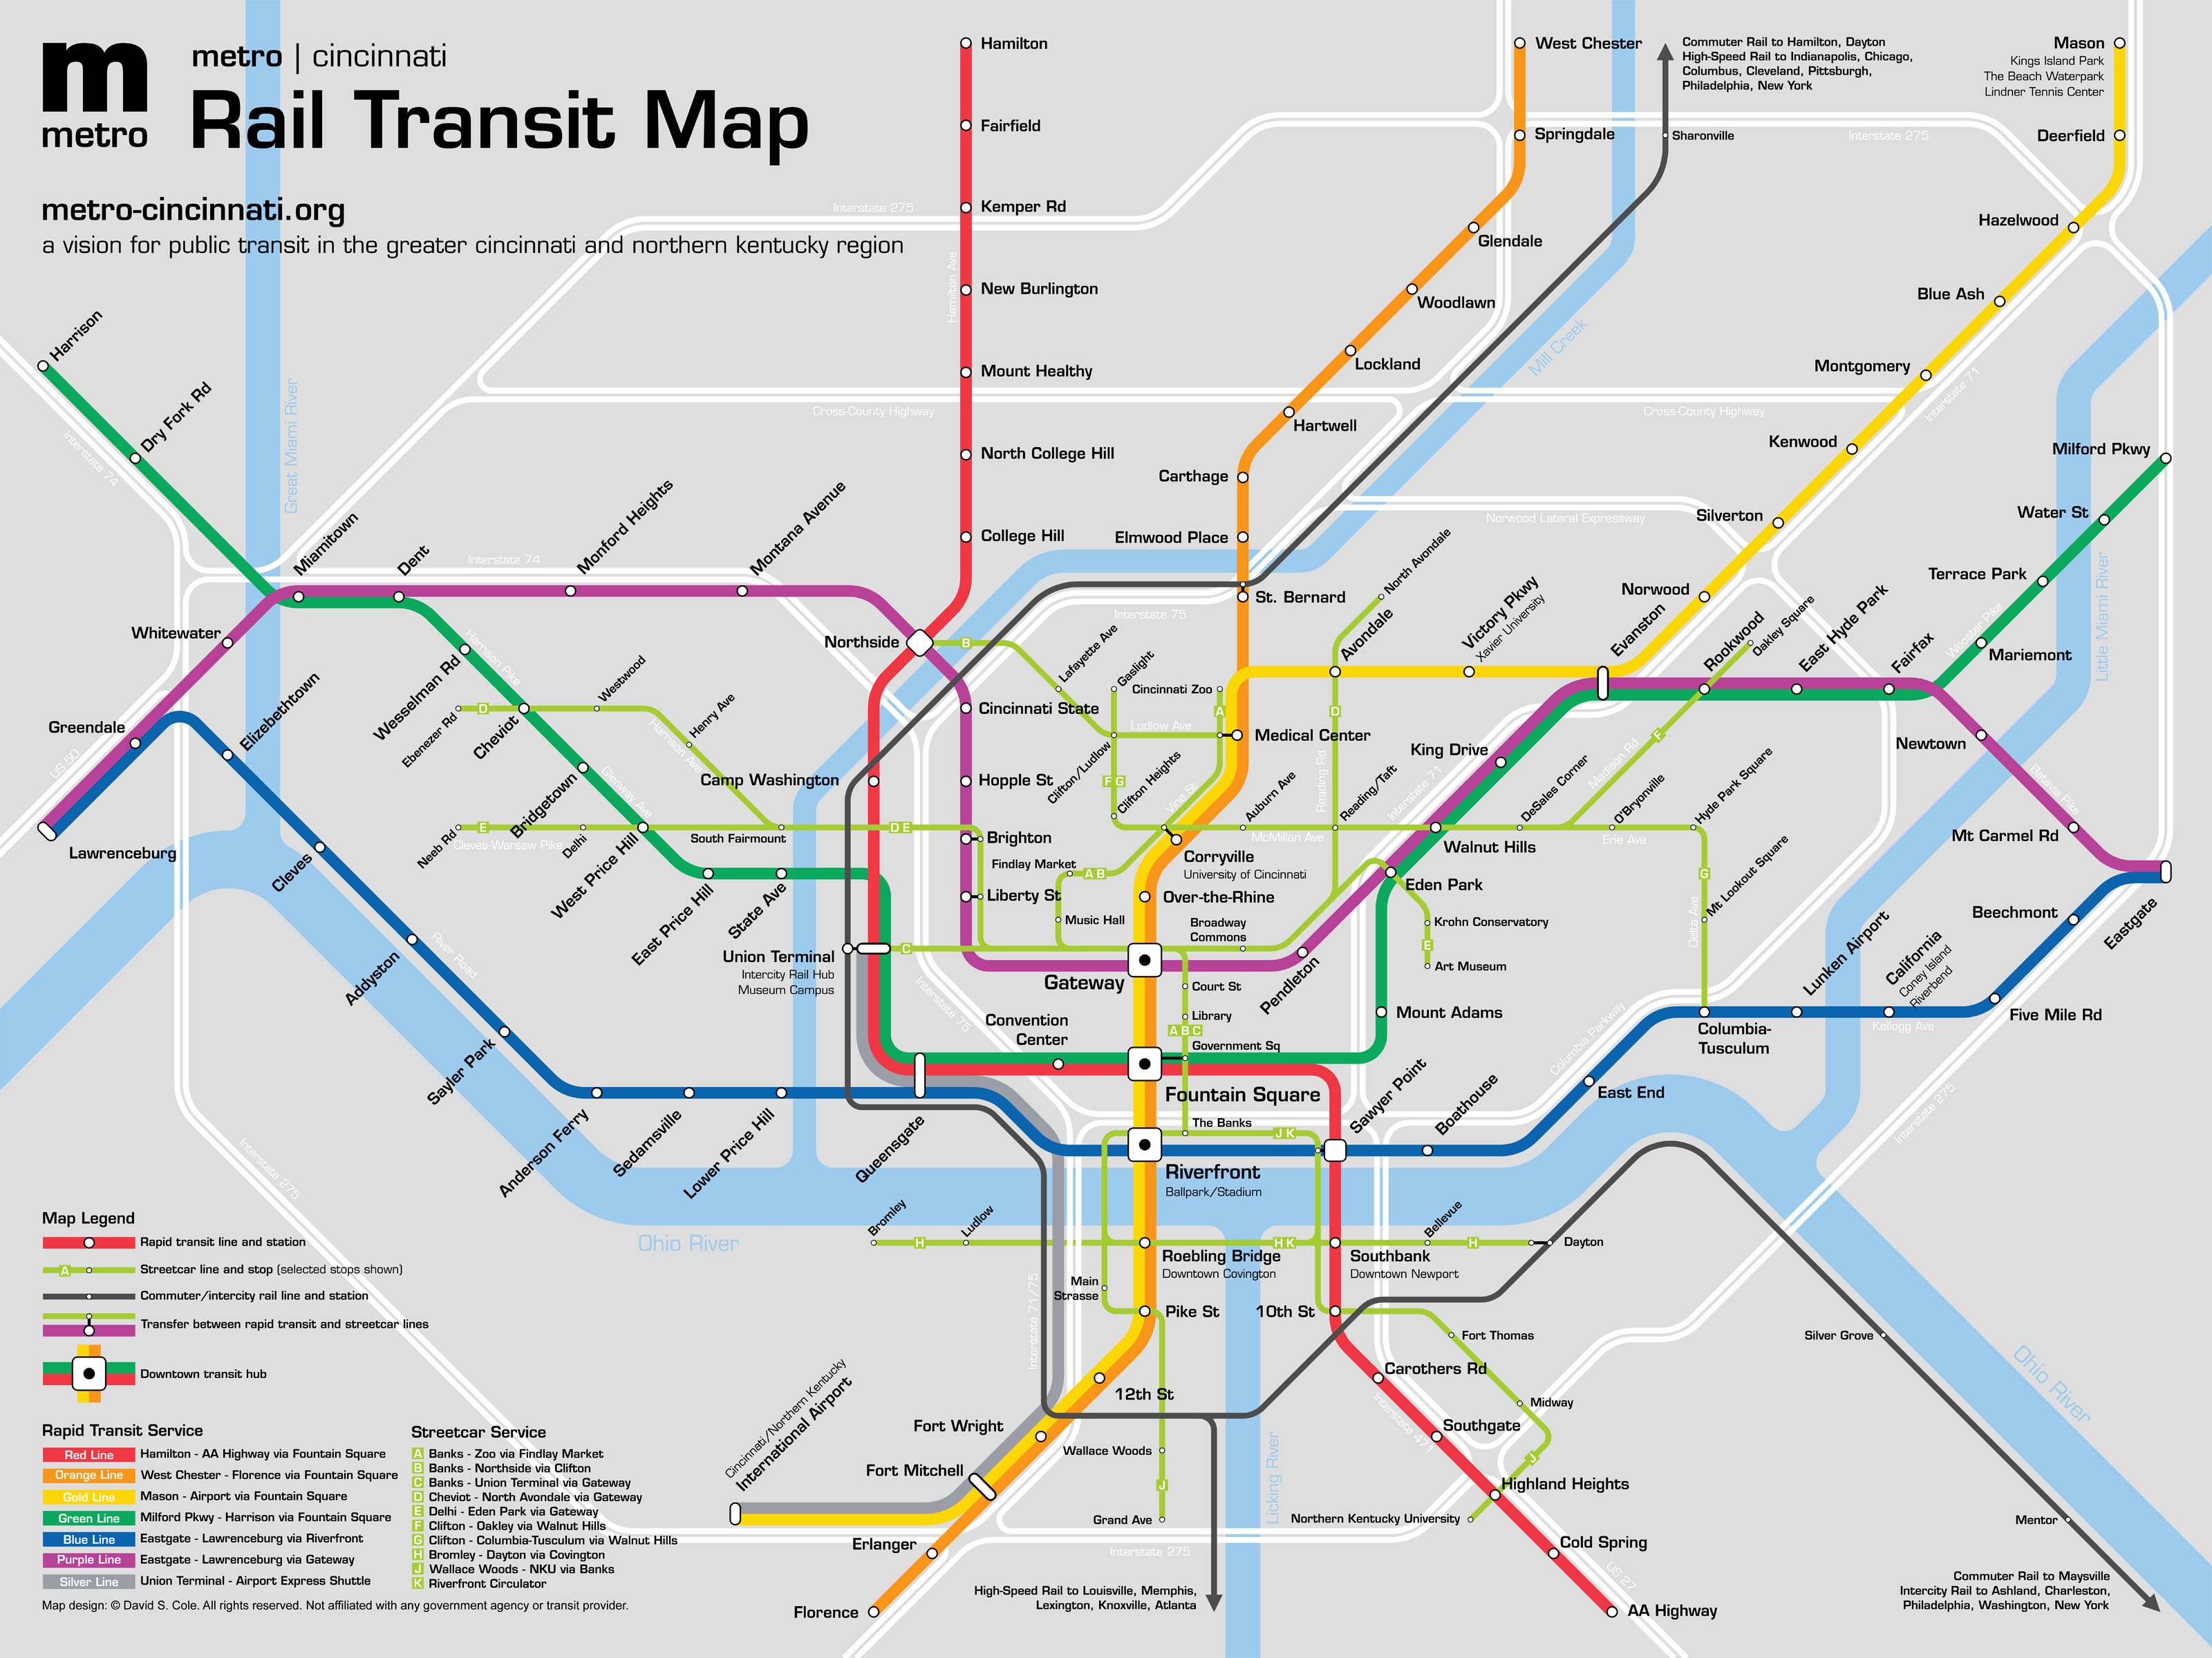 david cole's transit plan - the future of northern ky rail